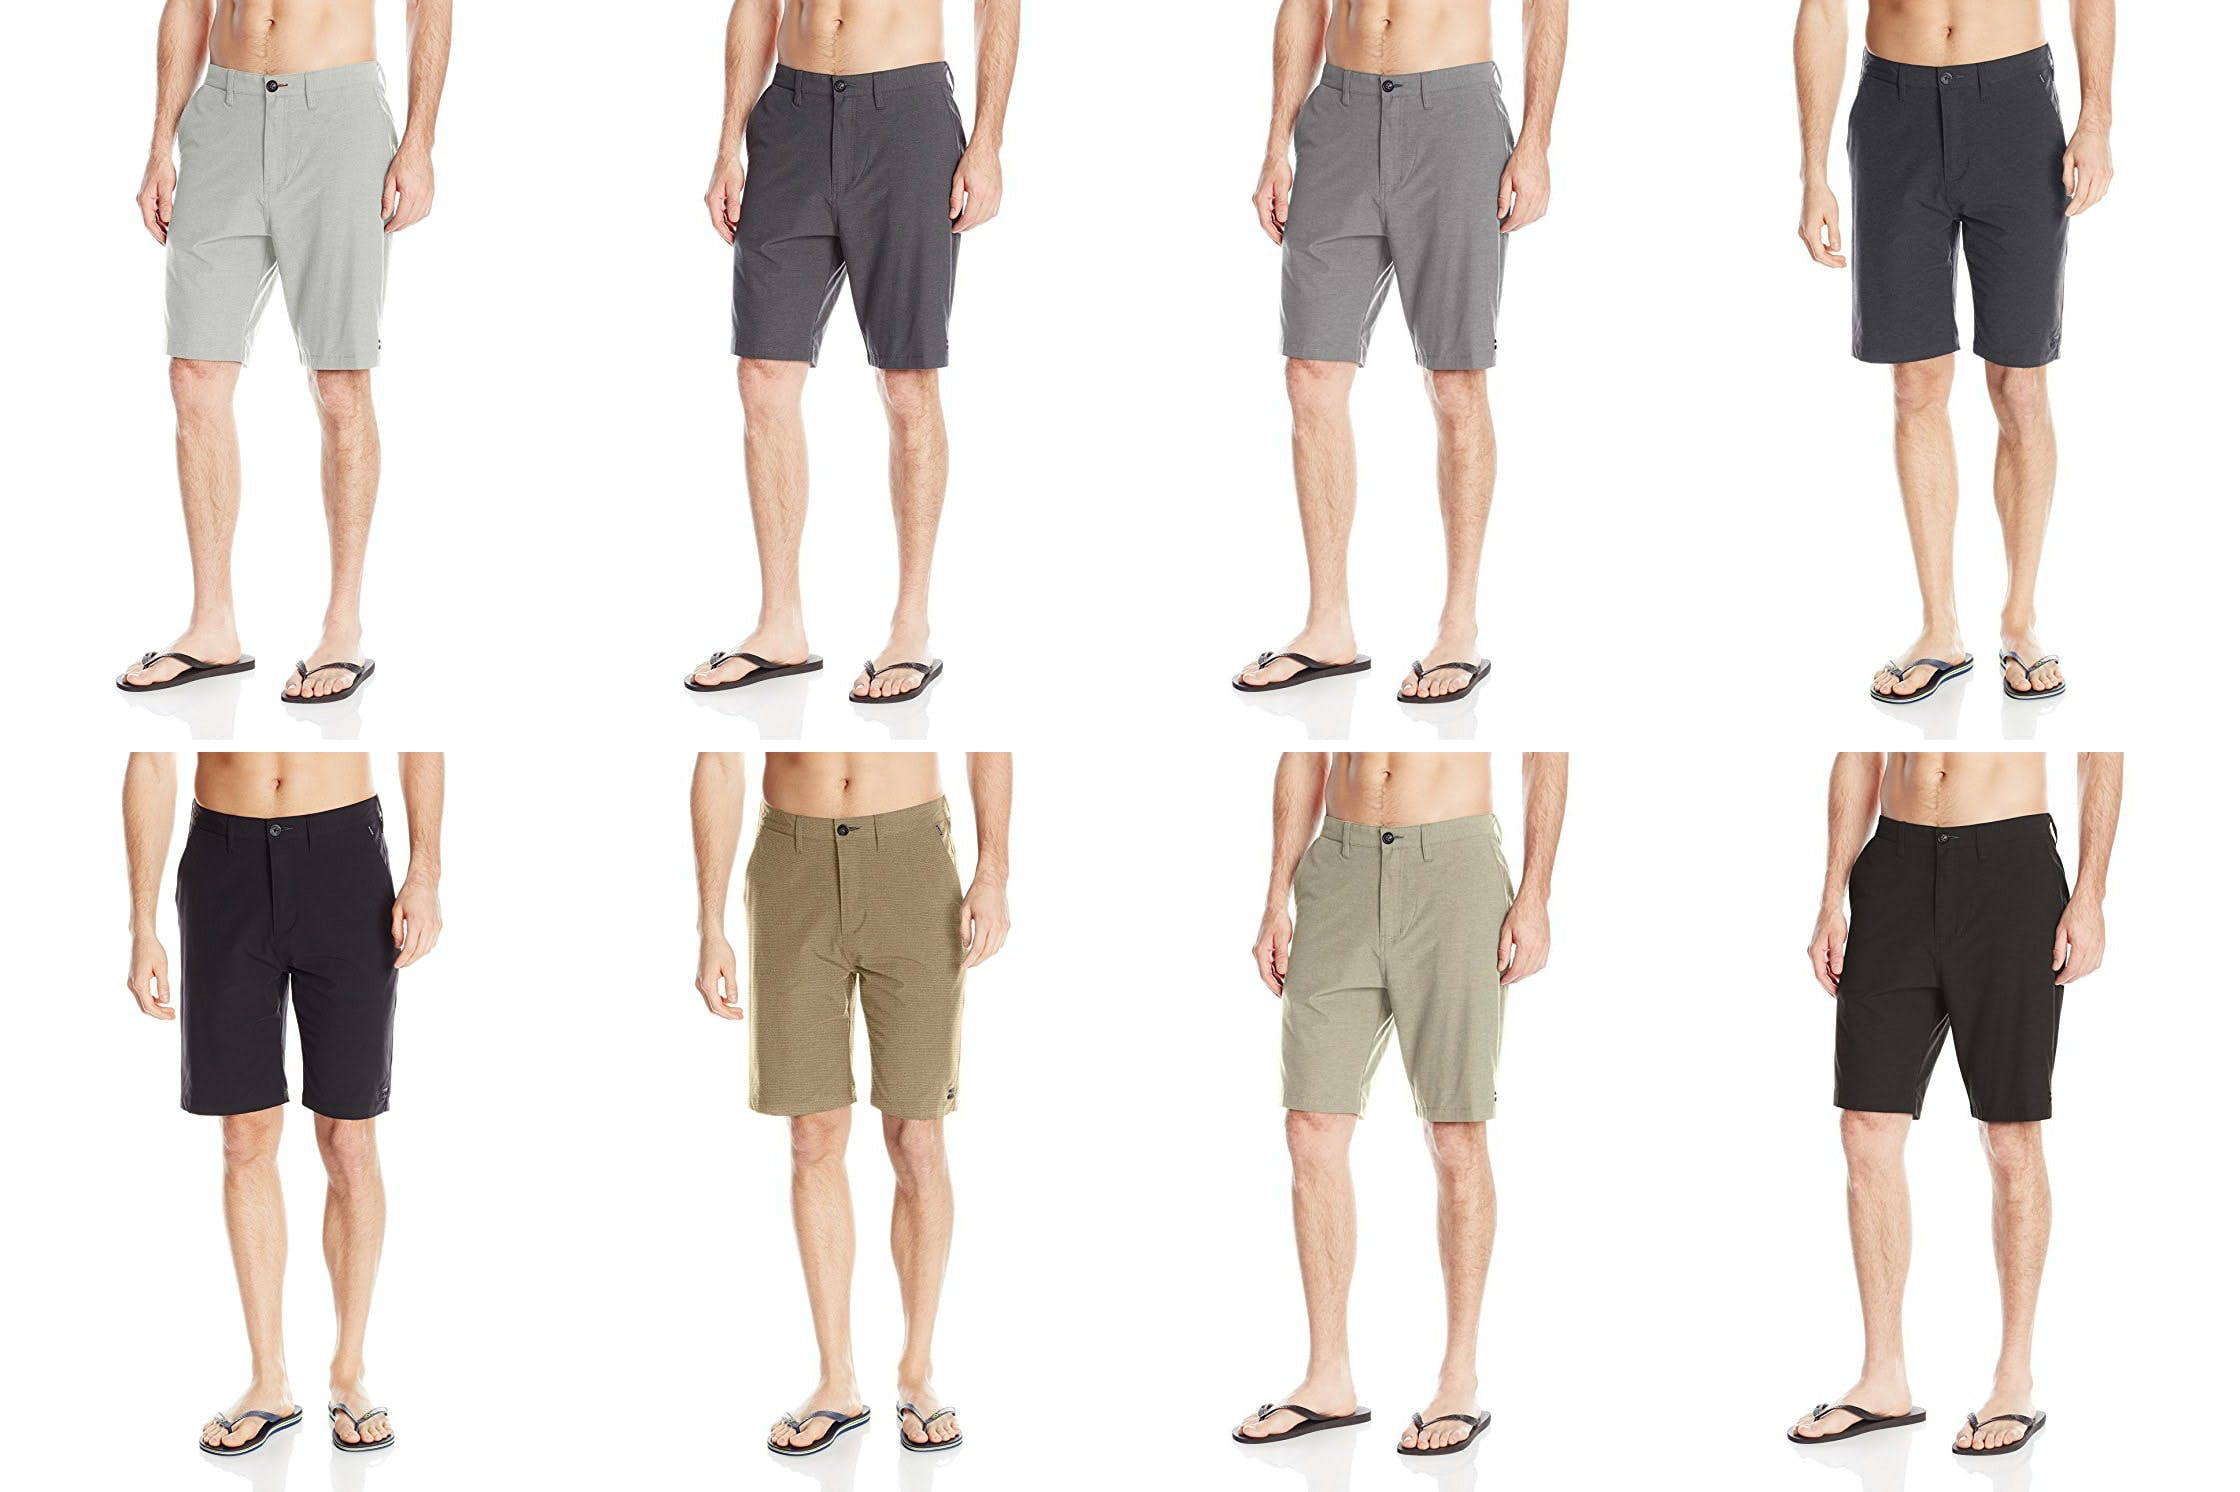 Billabong Crossfire X Submersible Short Colors